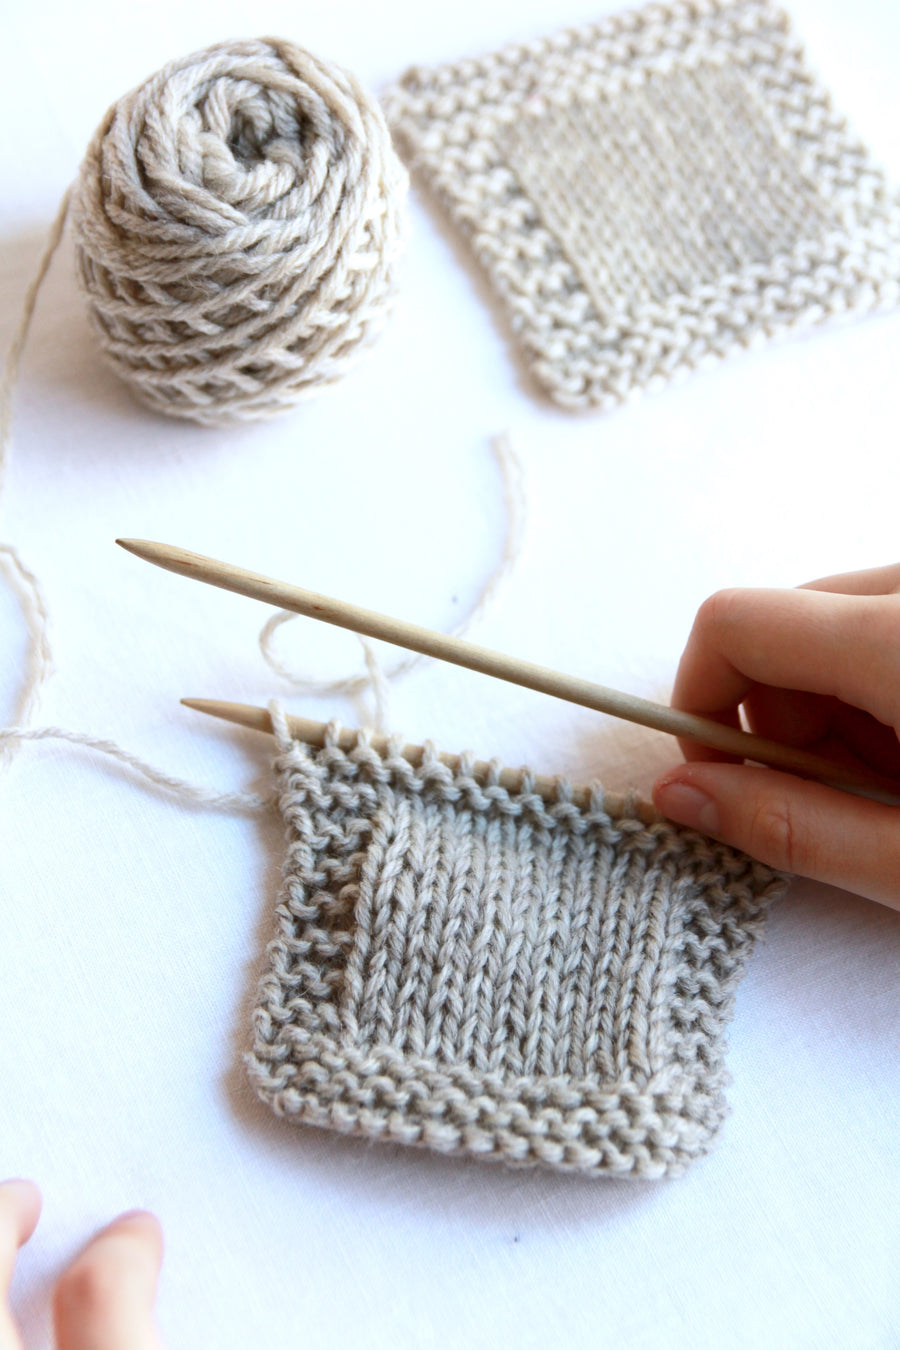 Knitting Beginner  -  One day